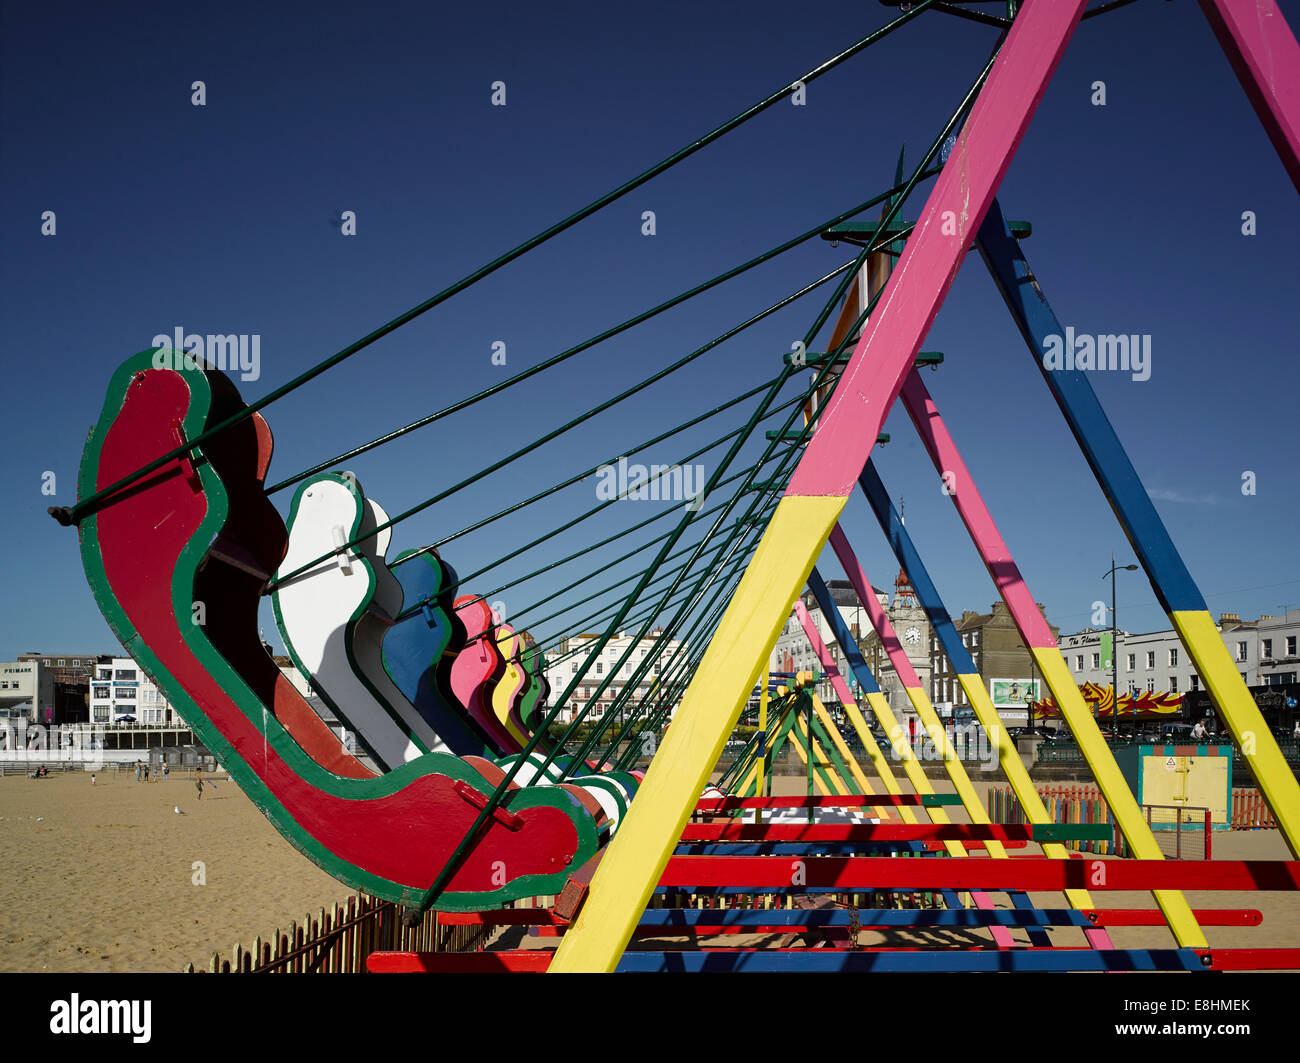 Swings on the beach at Margate, Kent, UK - Stock Image